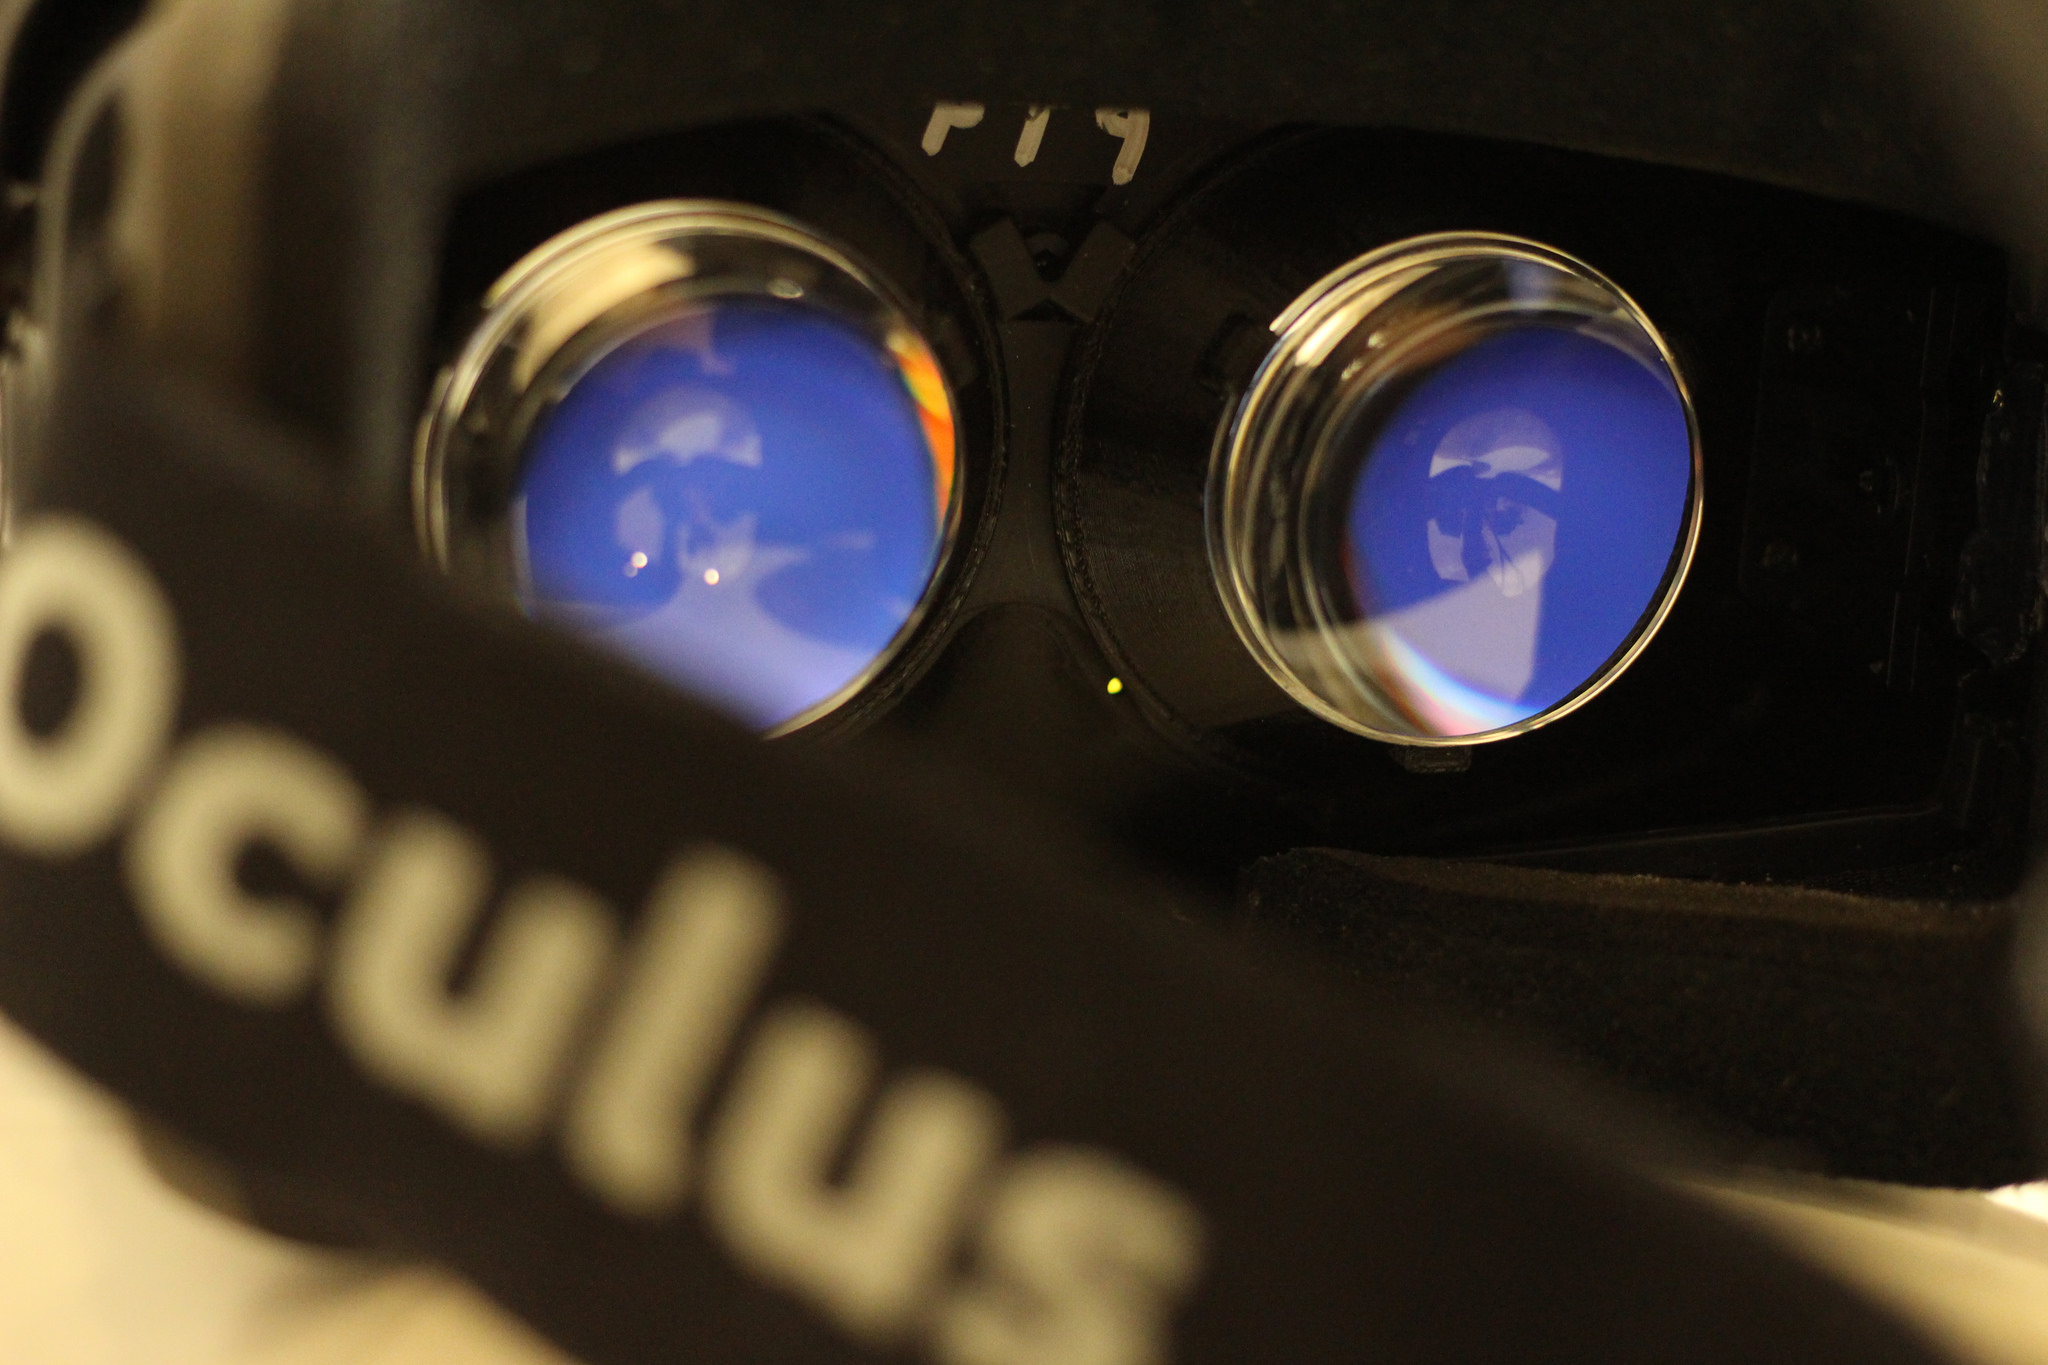 Oculus Rift is heading to the mainstream soon, thanks to massive financial backing from Facebook.